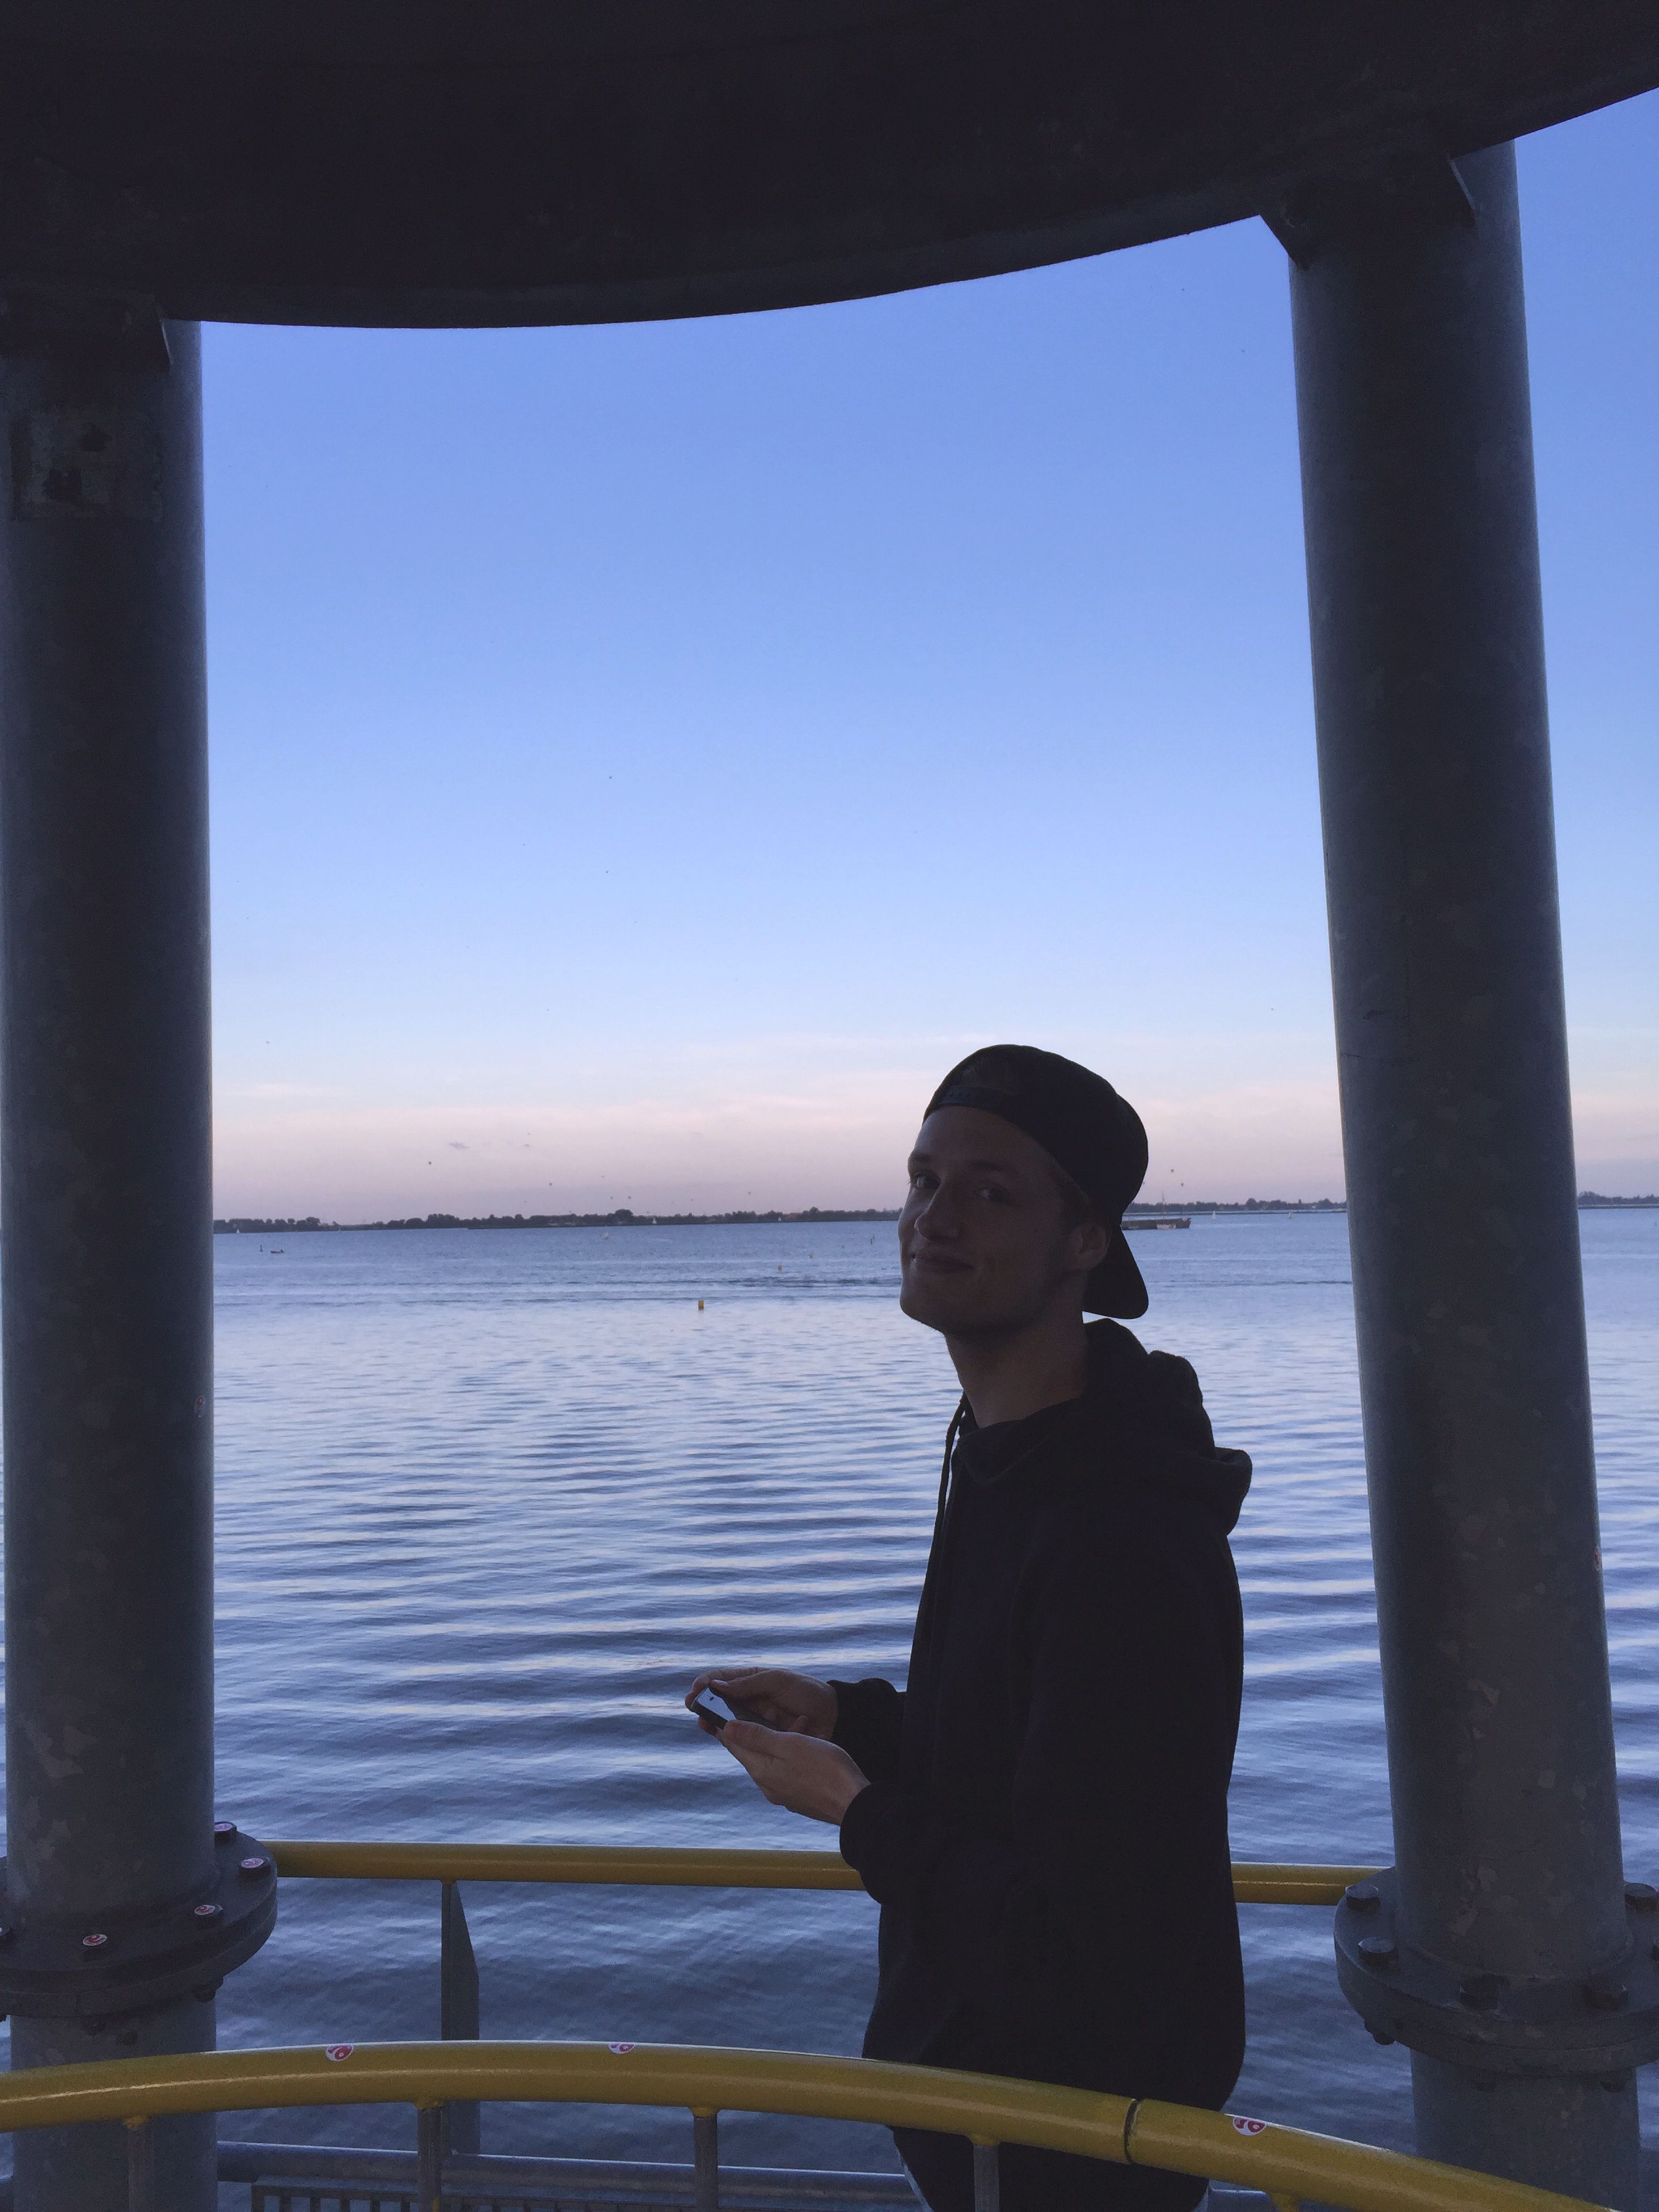 clear sky, water, sea, horizon over water, copy space, tranquility, silhouette, scenics, tranquil scene, indoors, nature, beauty in nature, railing, sky, architectural column, sunlight, day, built structure, sunset